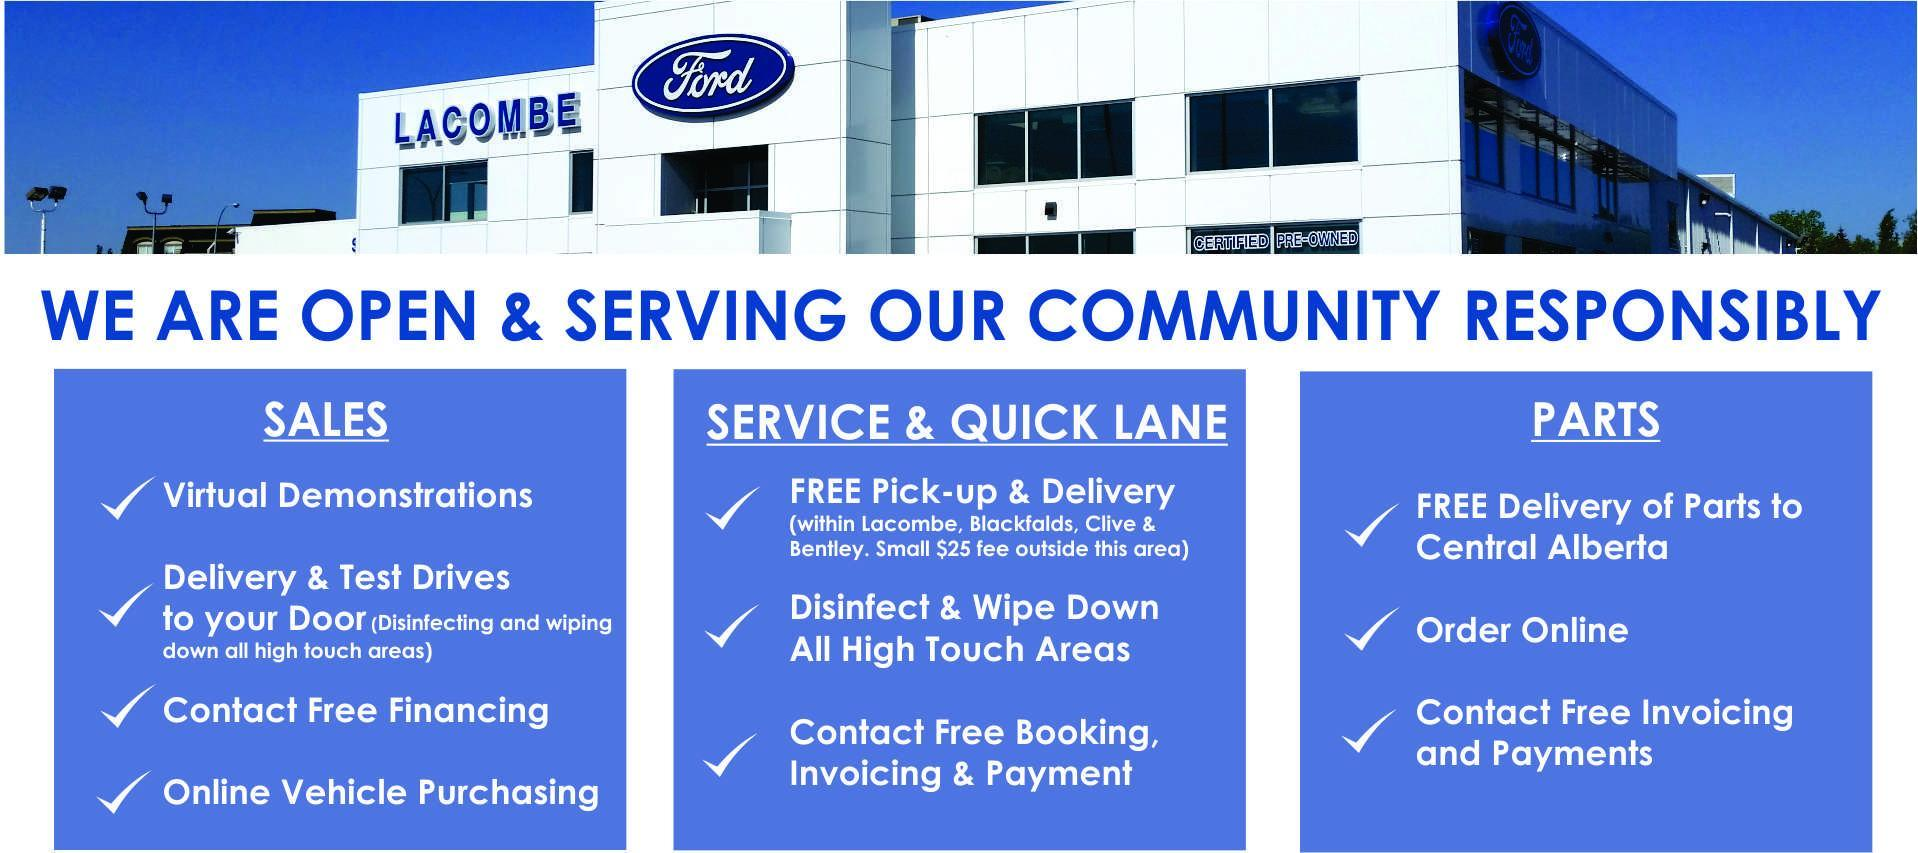 COVID-19 PRECAUTIONS AND ONLINE SALES LACOMBE FORD